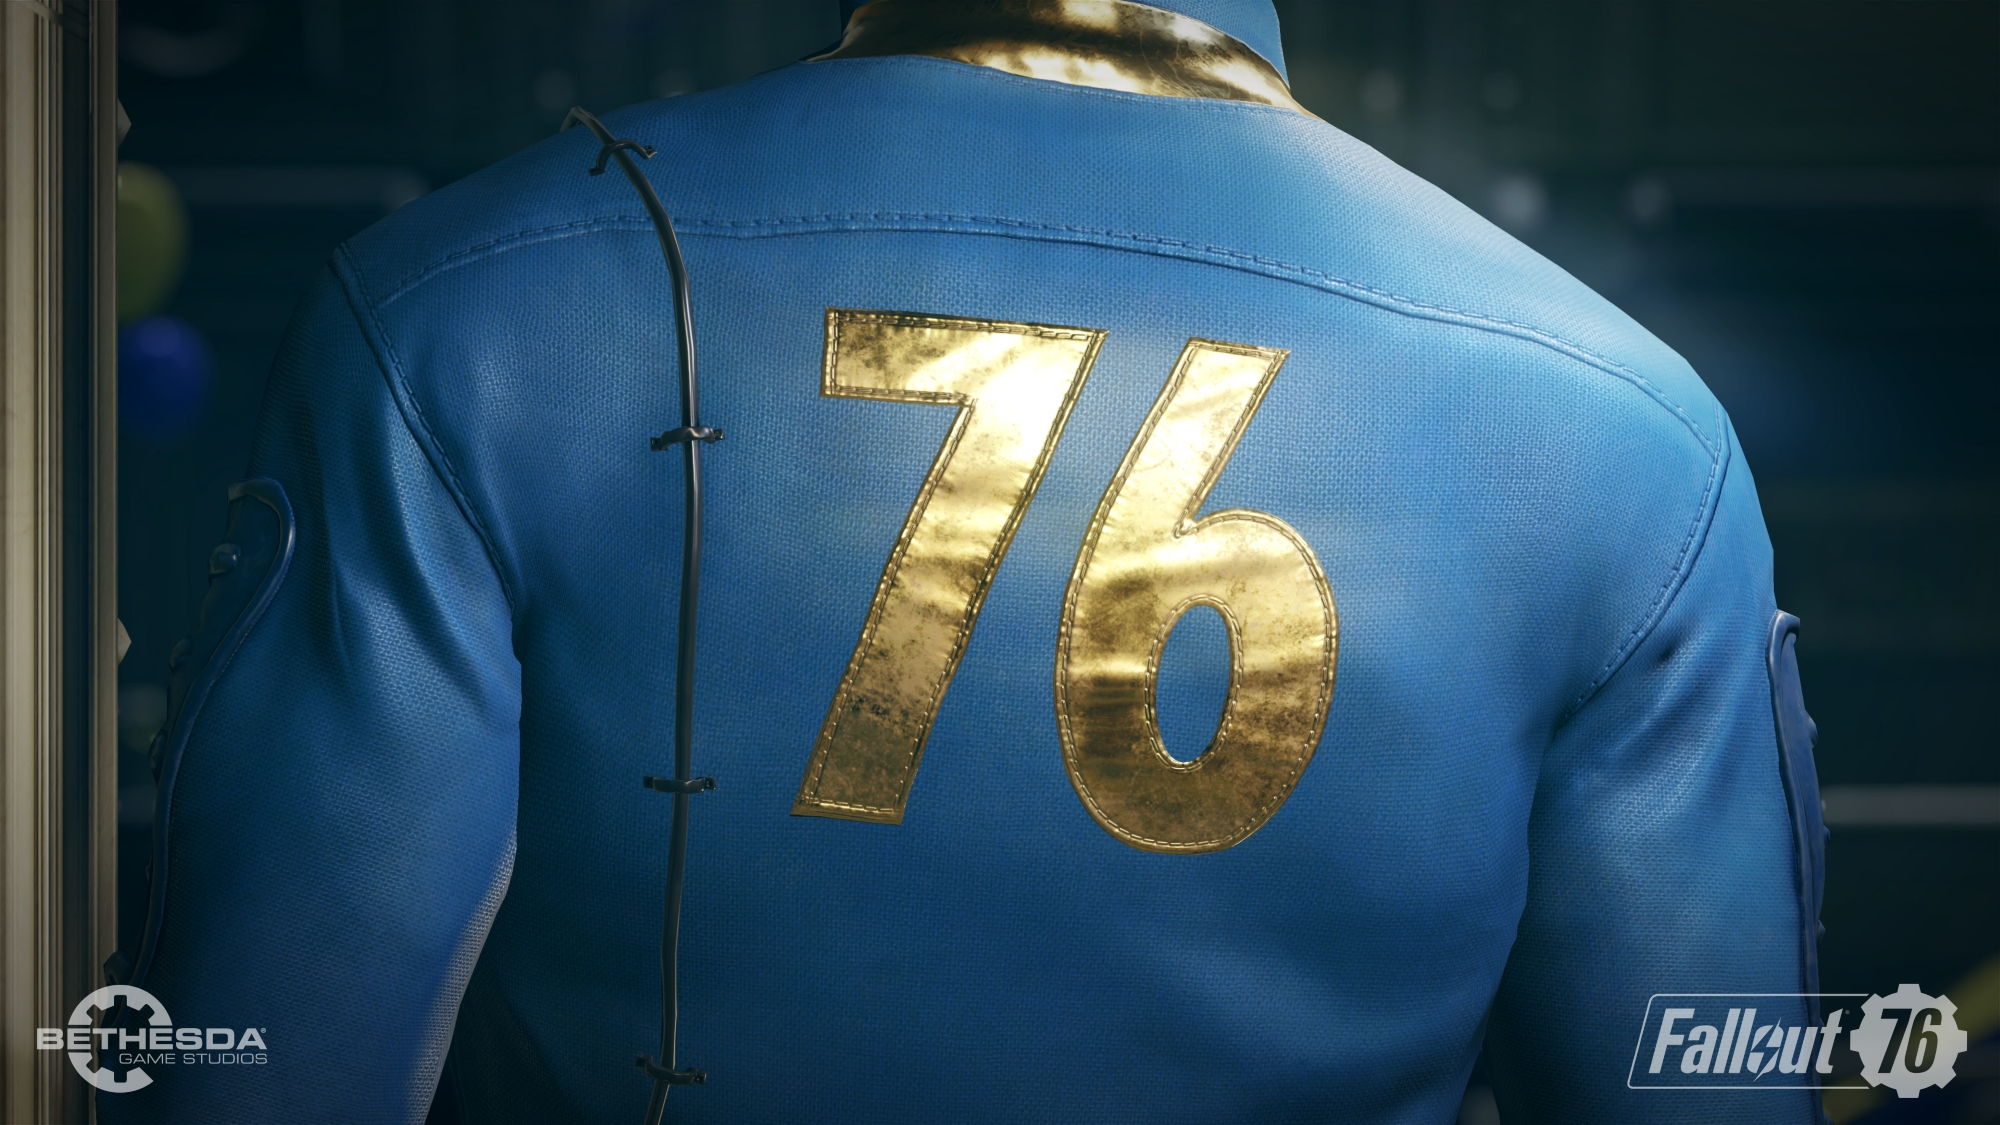 When is the Fallout 76 beta release date?